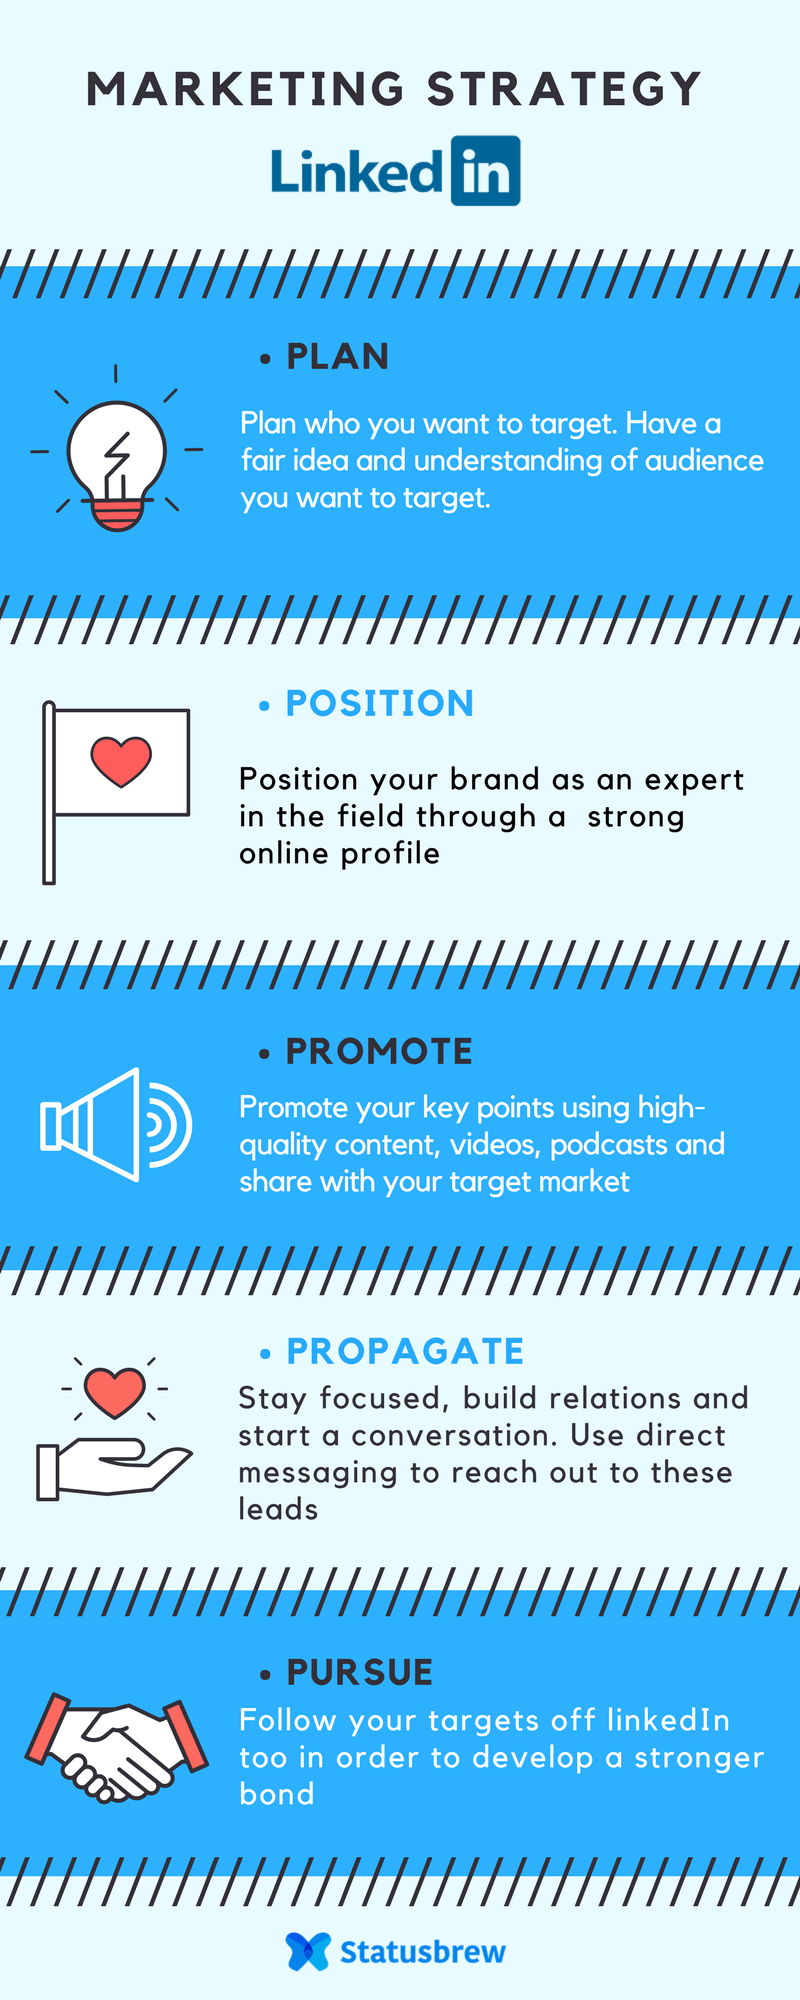 LinkedIn Marketing Strategy Infographic